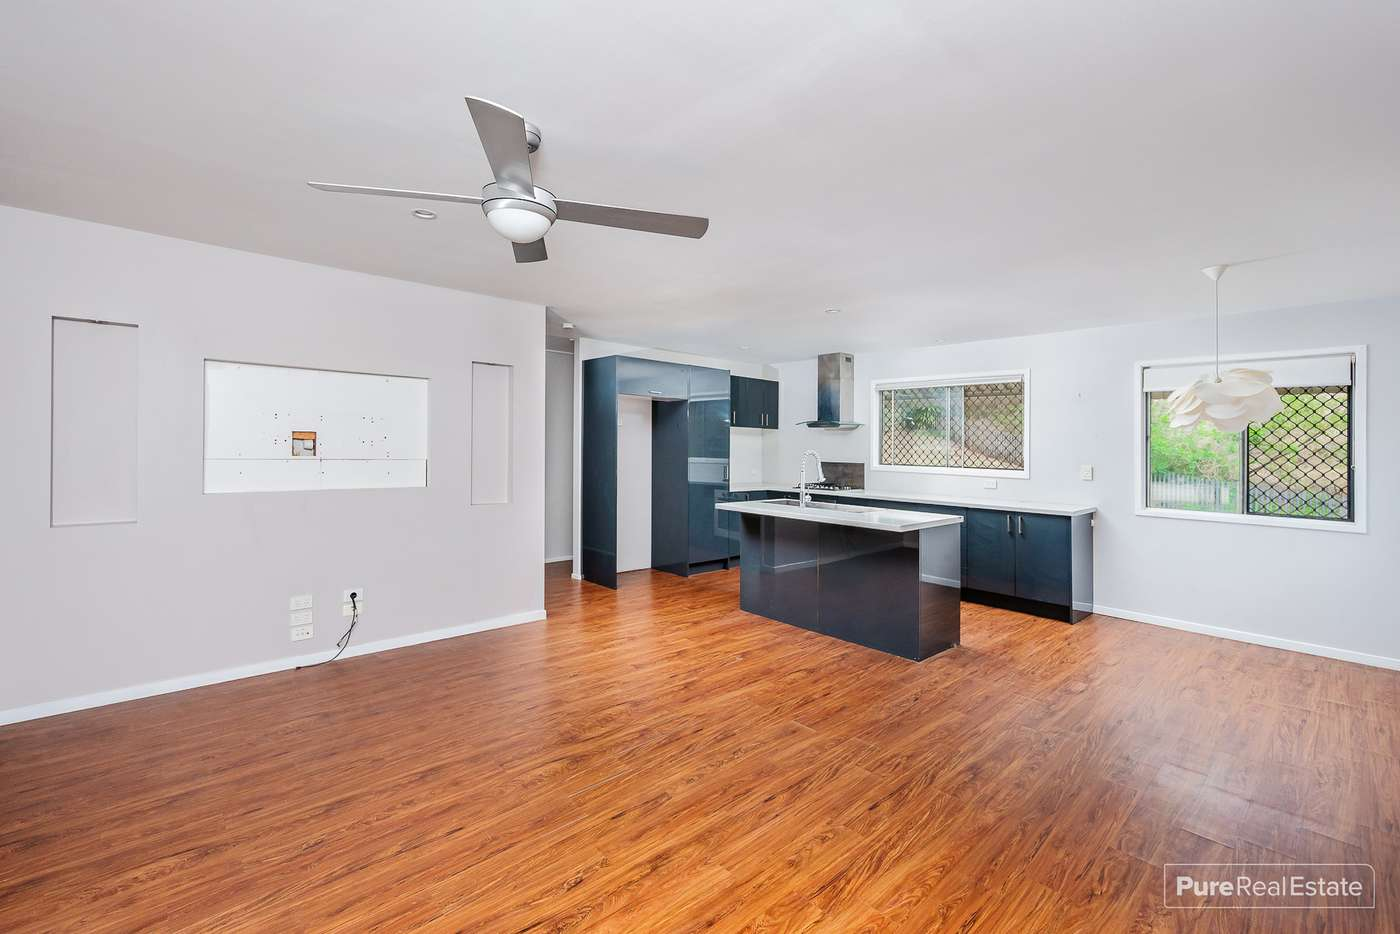 Fifth view of Homely house listing, 25 David Road, Holland Park QLD 4121